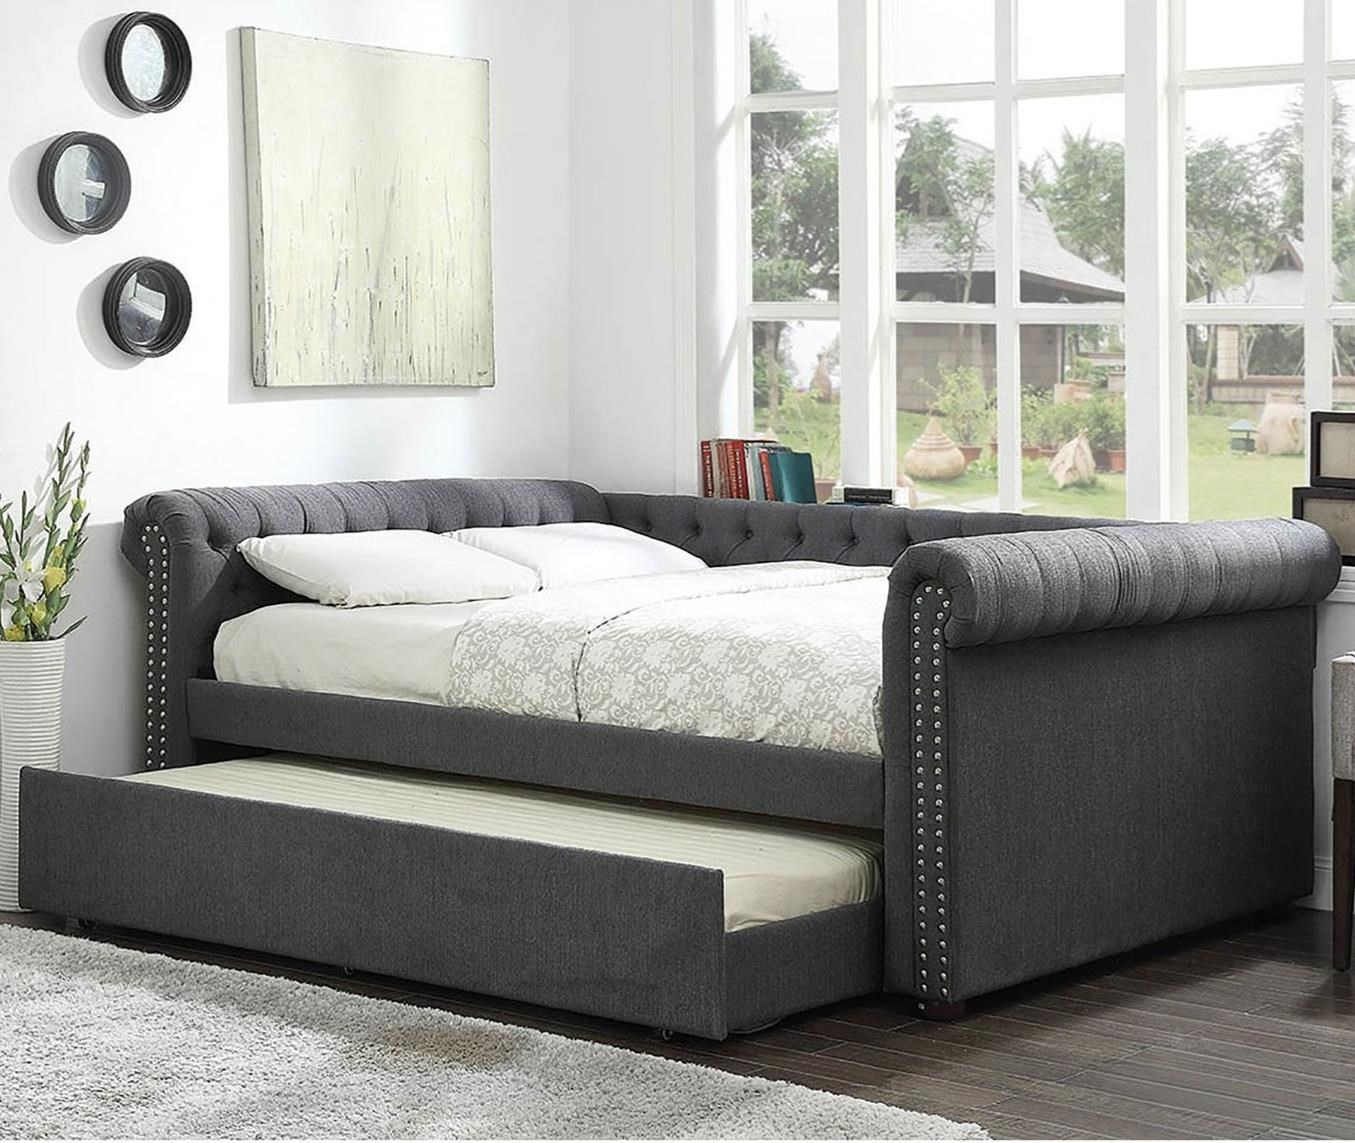 - Leanna Transitional Tufted Queen Size Daybed With Trundle